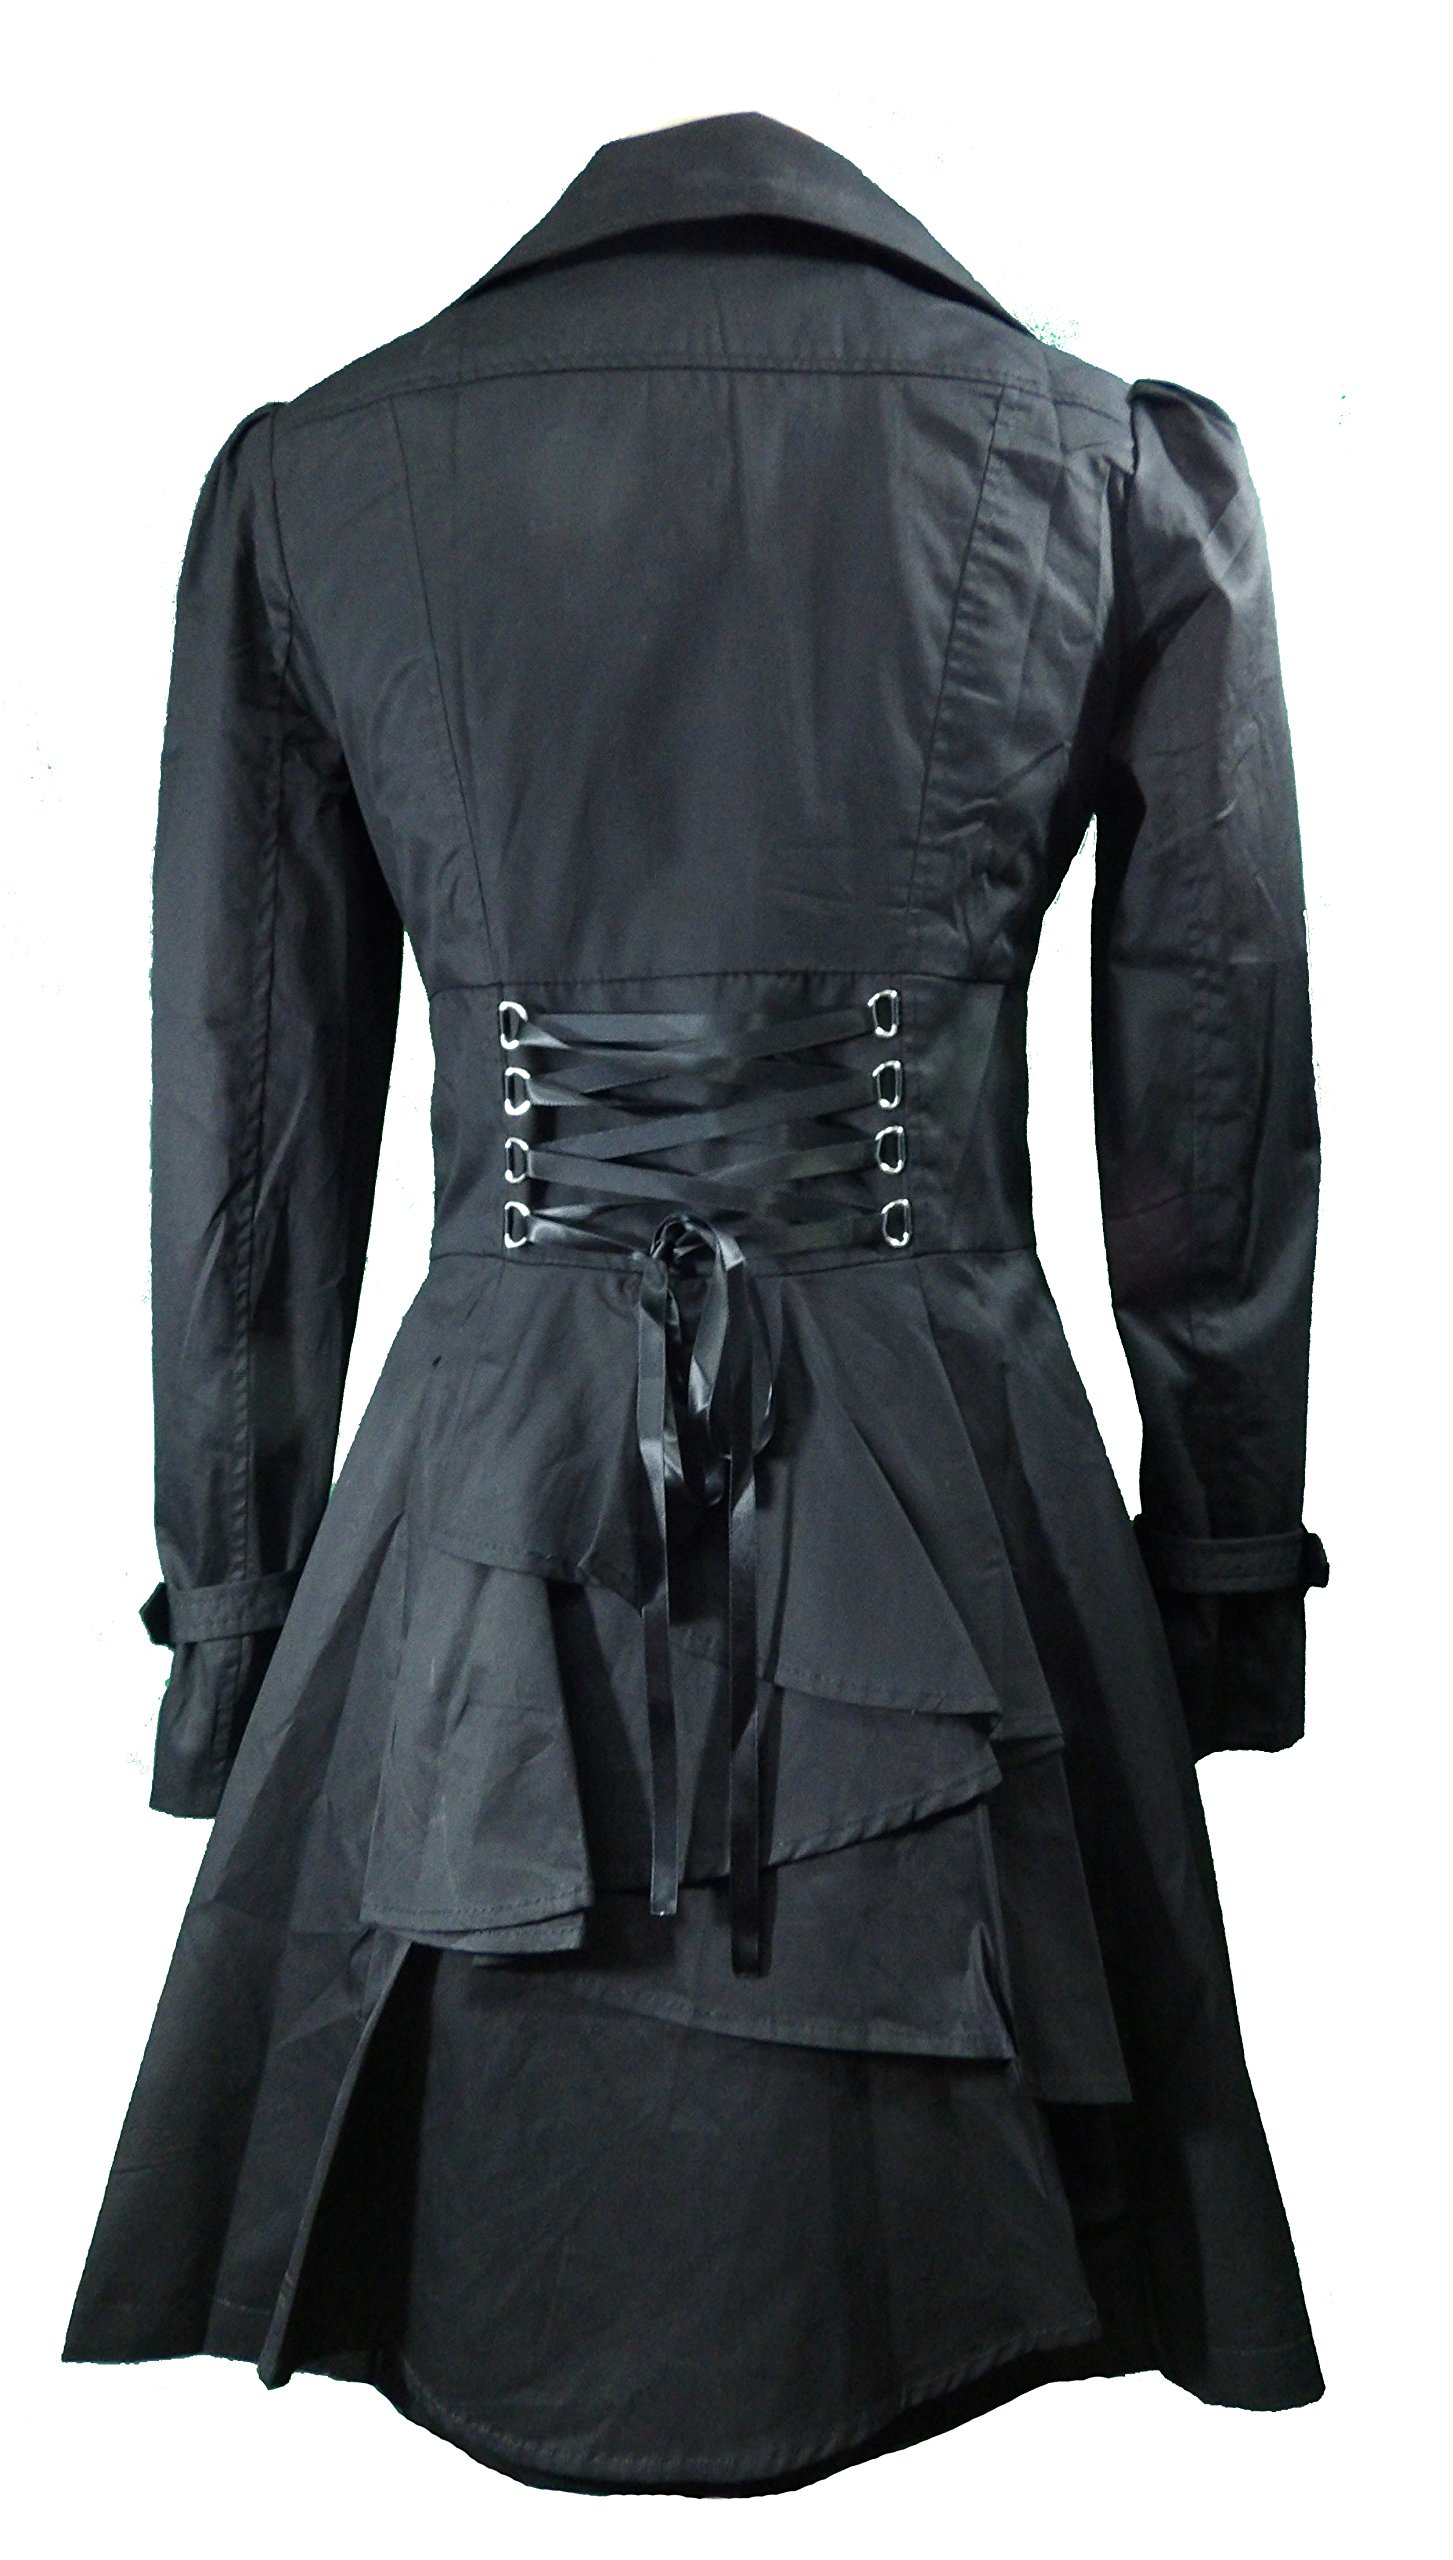 -Rainy Night in Paris- Black Victorian Gothic Corset Vintage Style Jacket (Medium)